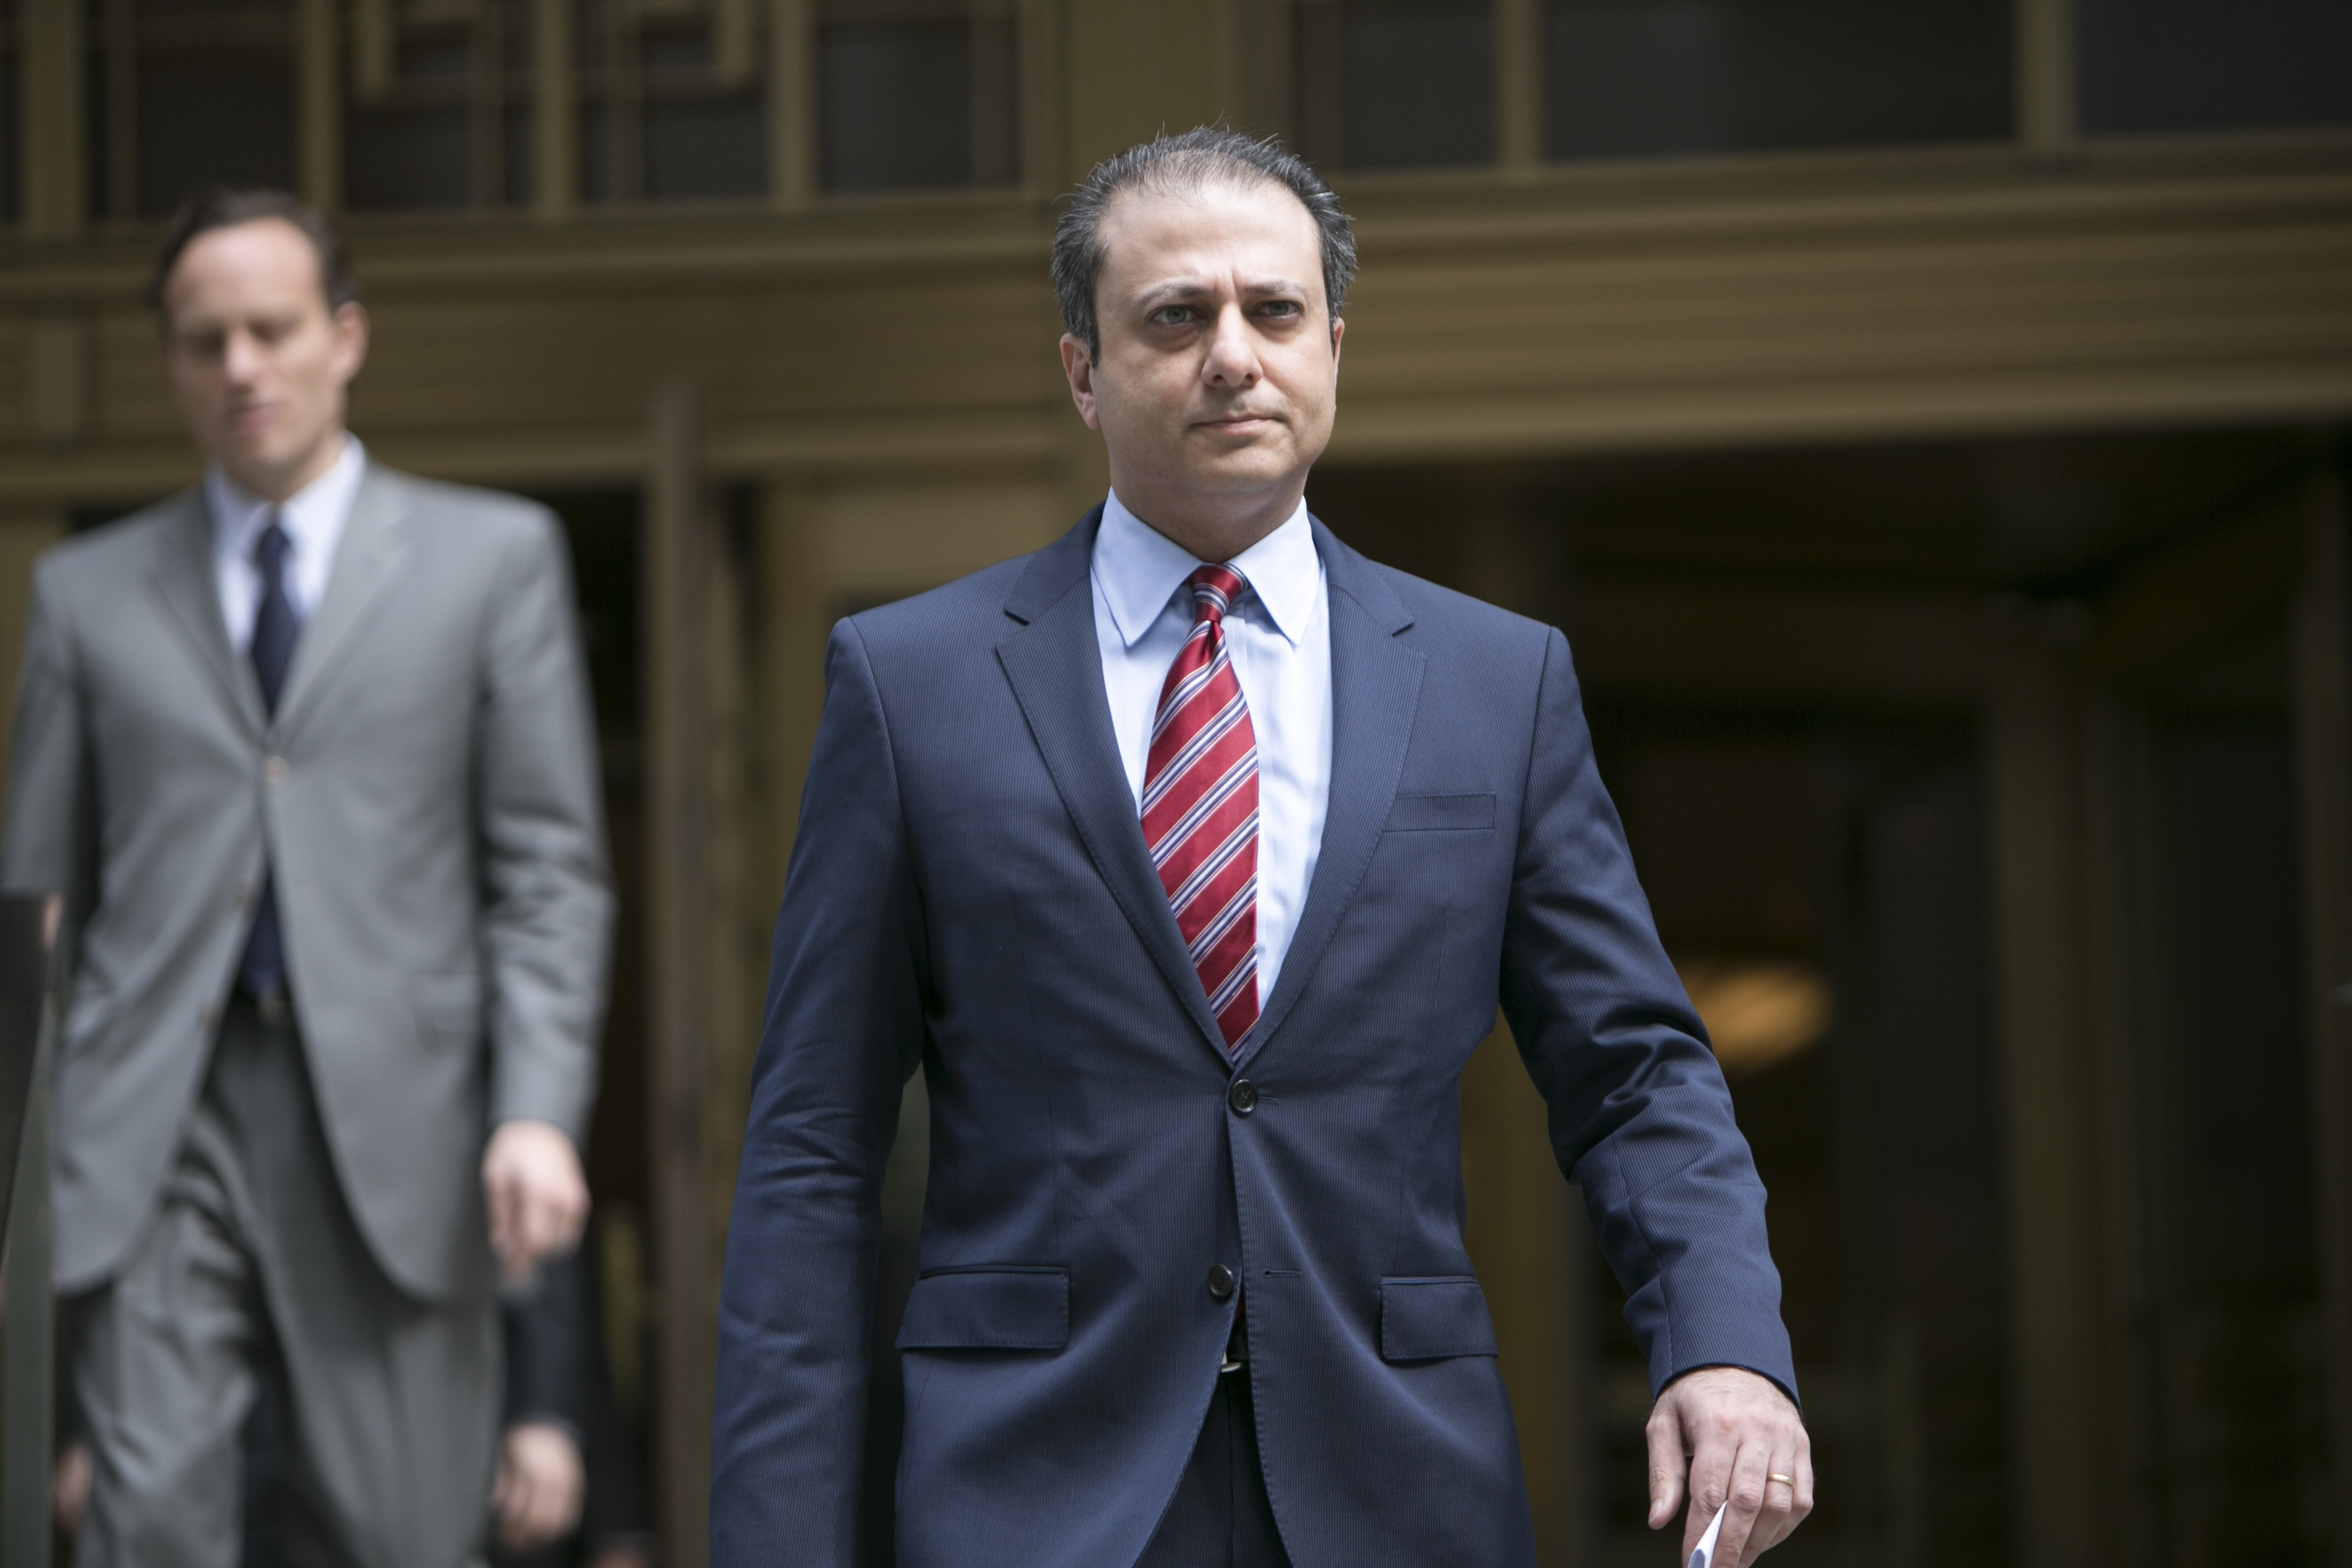 Preet Bharara, the U.S. attorney in Manhattan, speaks in New York, May 19, 2014. Bharara threatened to investigate the administration of Gov. Andrew Cuomo for possible witness tampering on July 30, escalating a confrontation over Cuomo's cancellation of his own anti-corruption commission. (The New York Times)